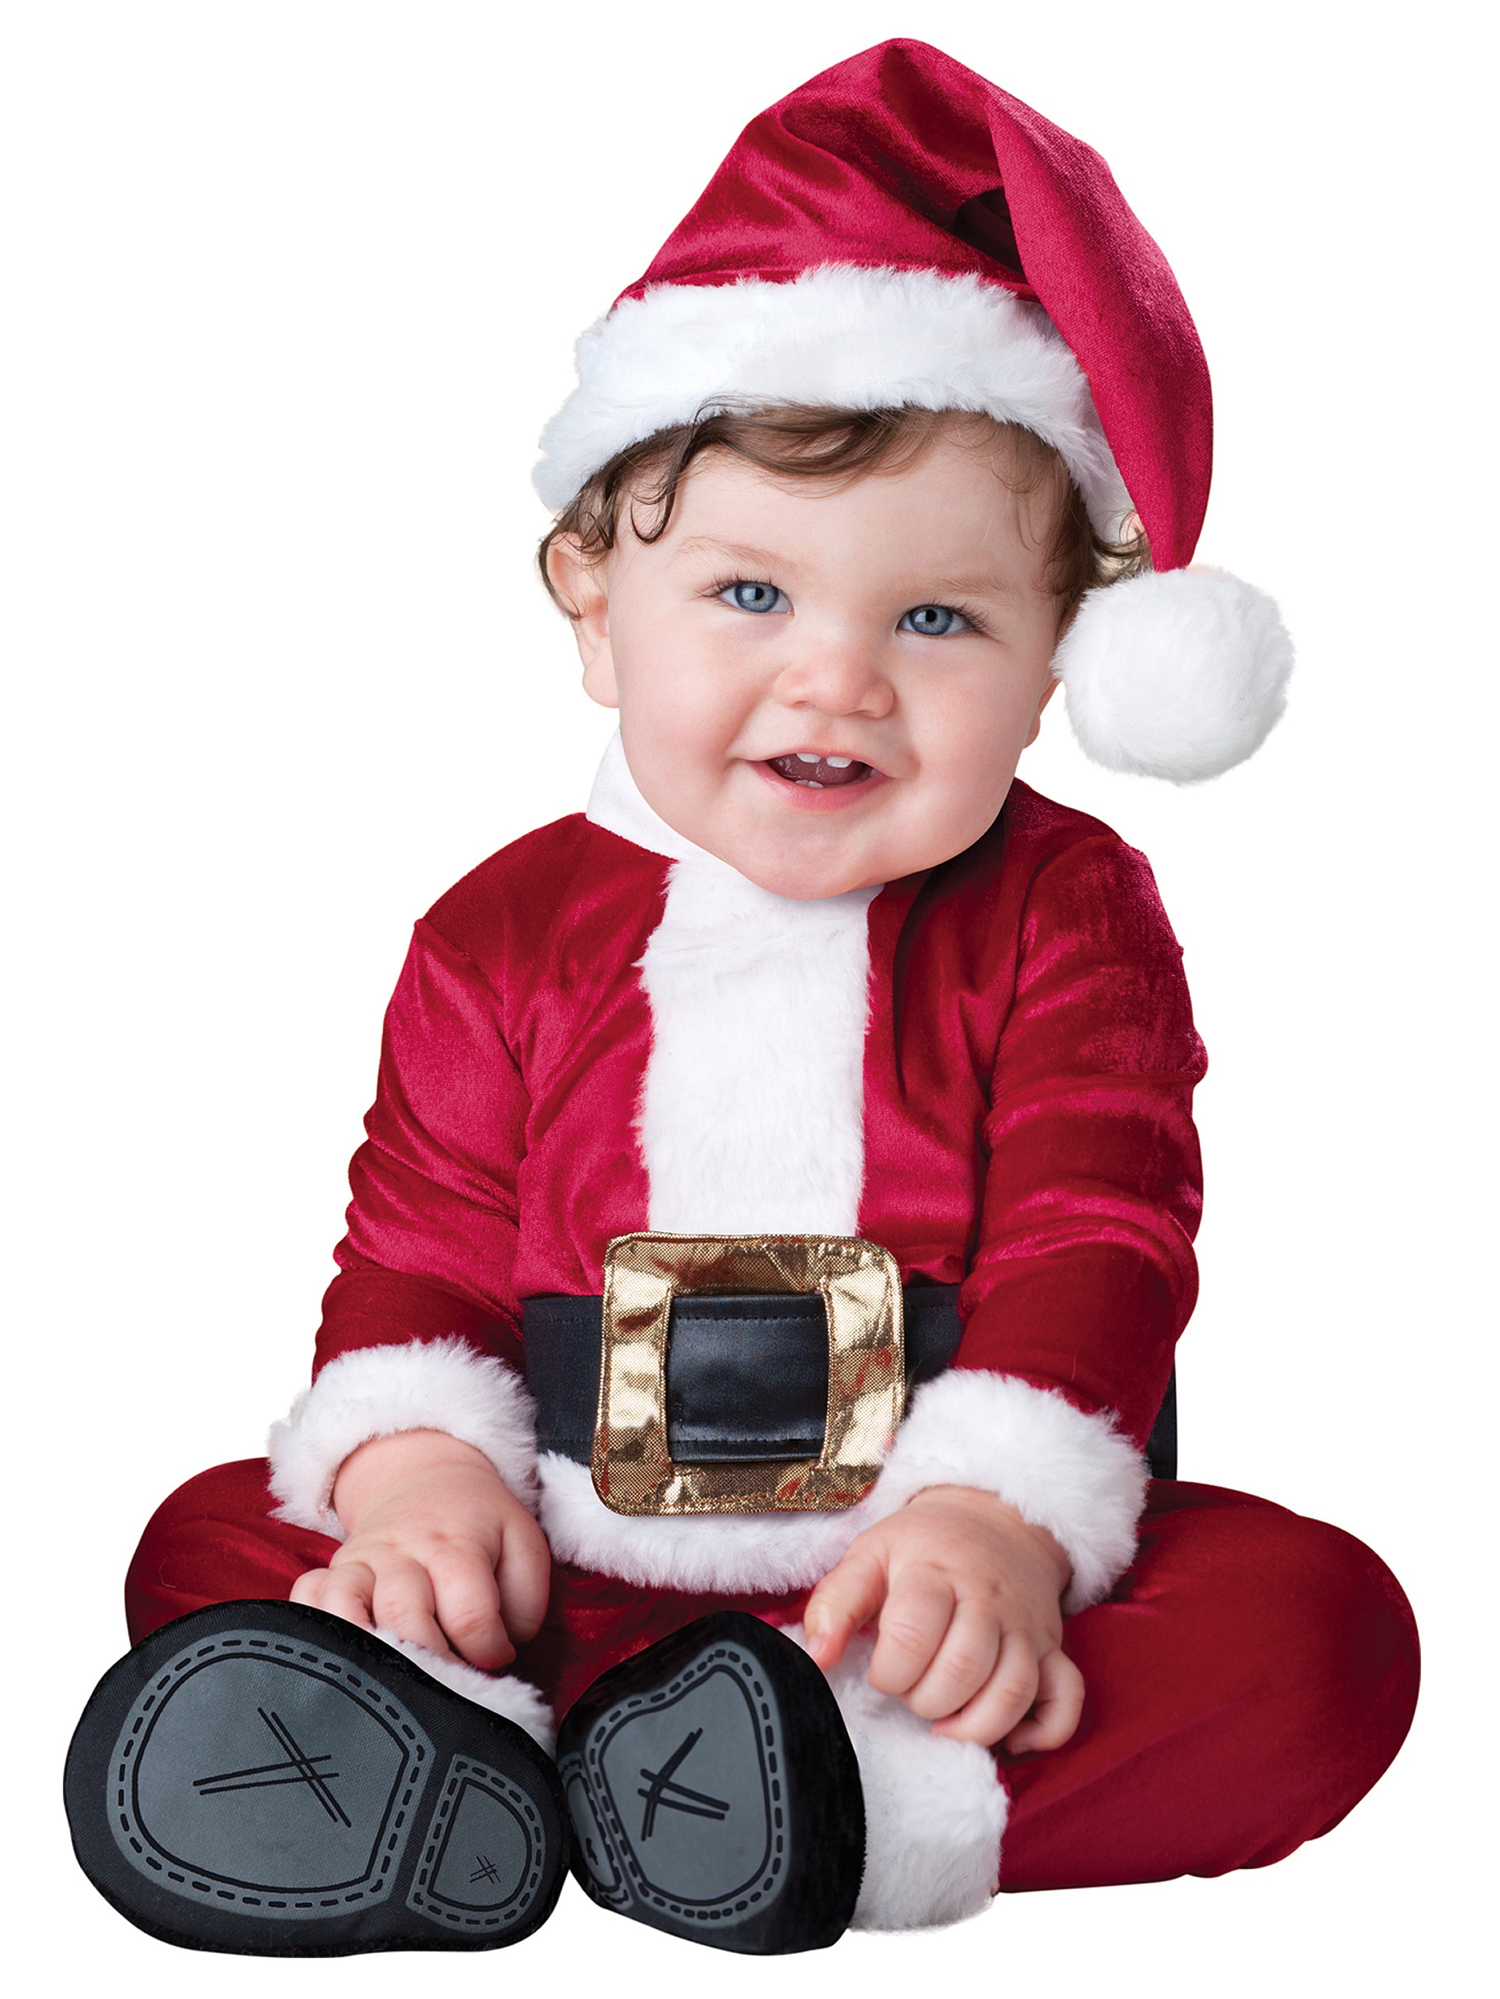 Baby Santa Claus Chirstmas Dress Up Toddler Infant Baby Boys Costume